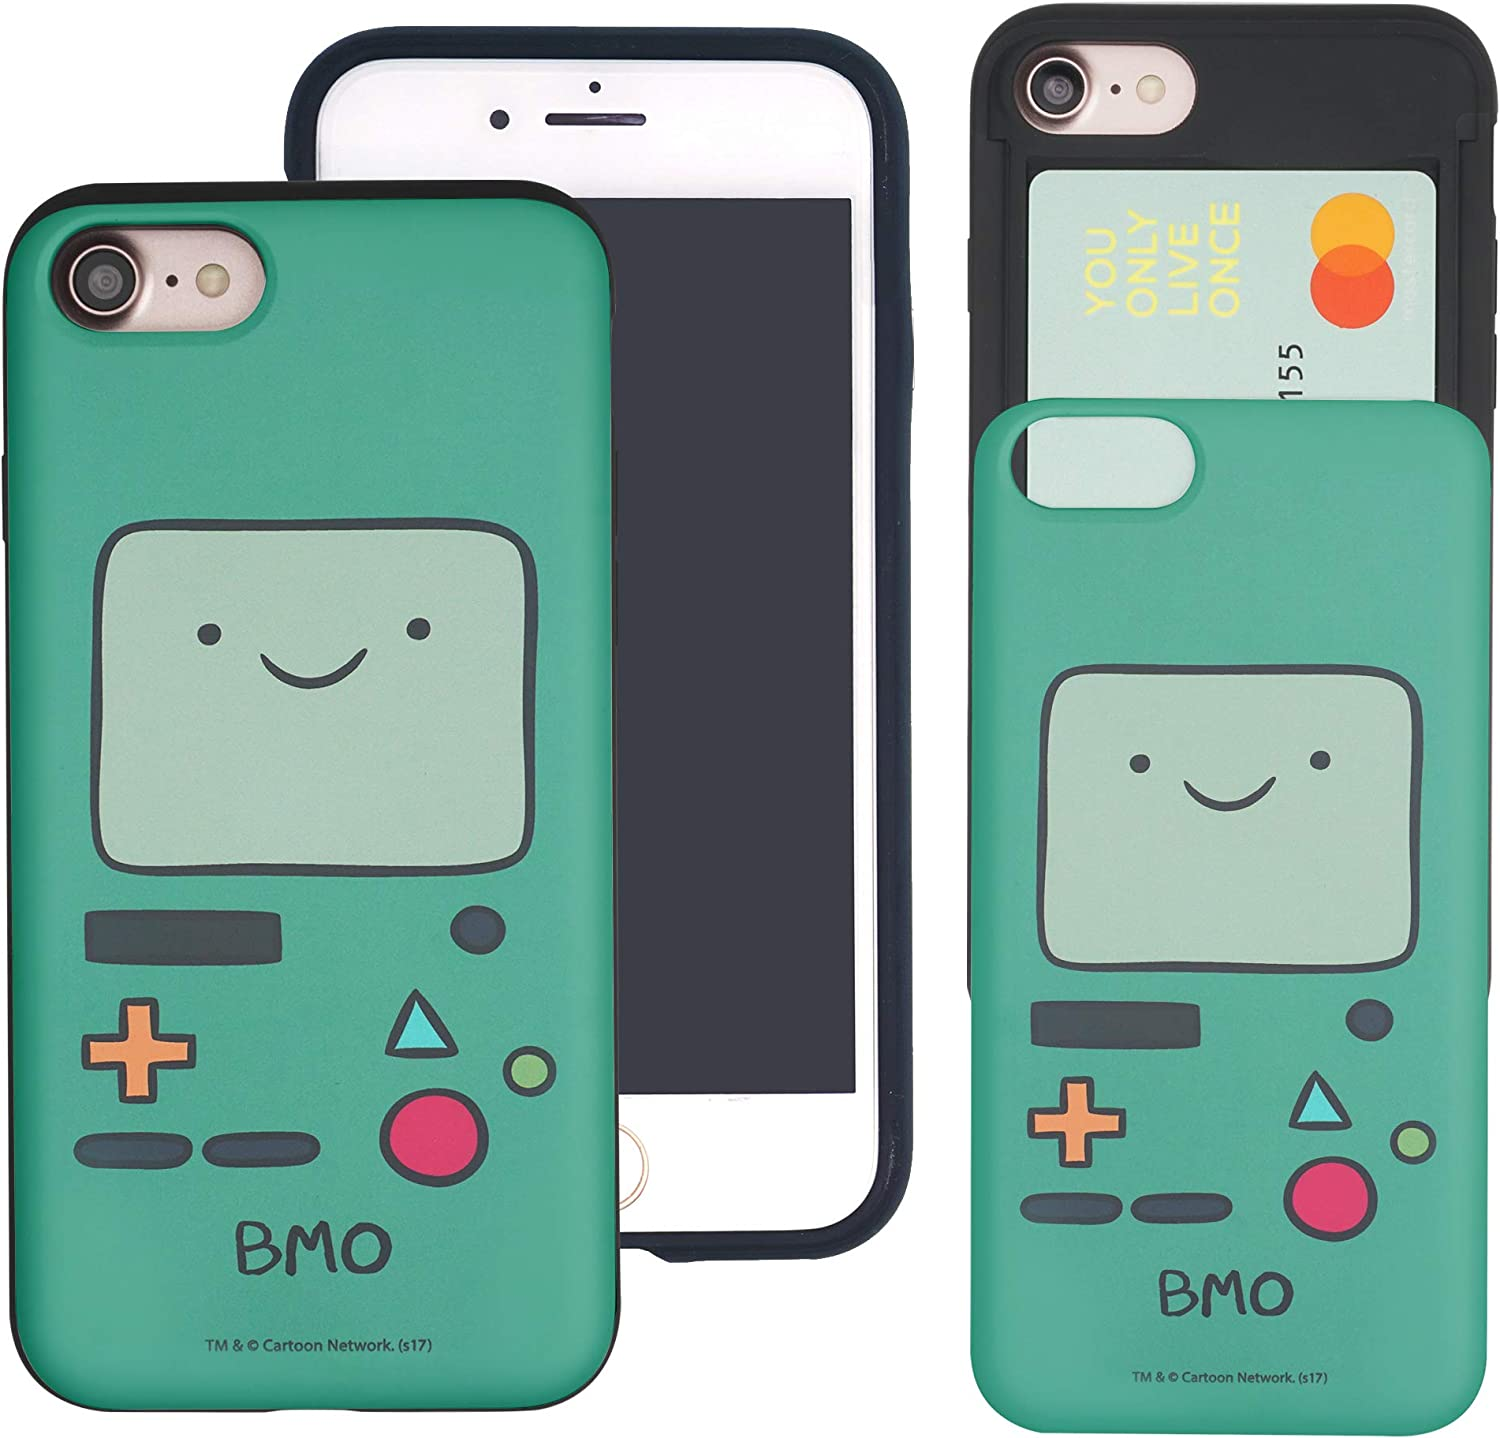 Compatible with iPhone 6S / iPhone 6 Case (4.7inch) Adventure Time Slim Slider Card Slot Dual Layer Holder Bumper Cover - Beemo (BMO)